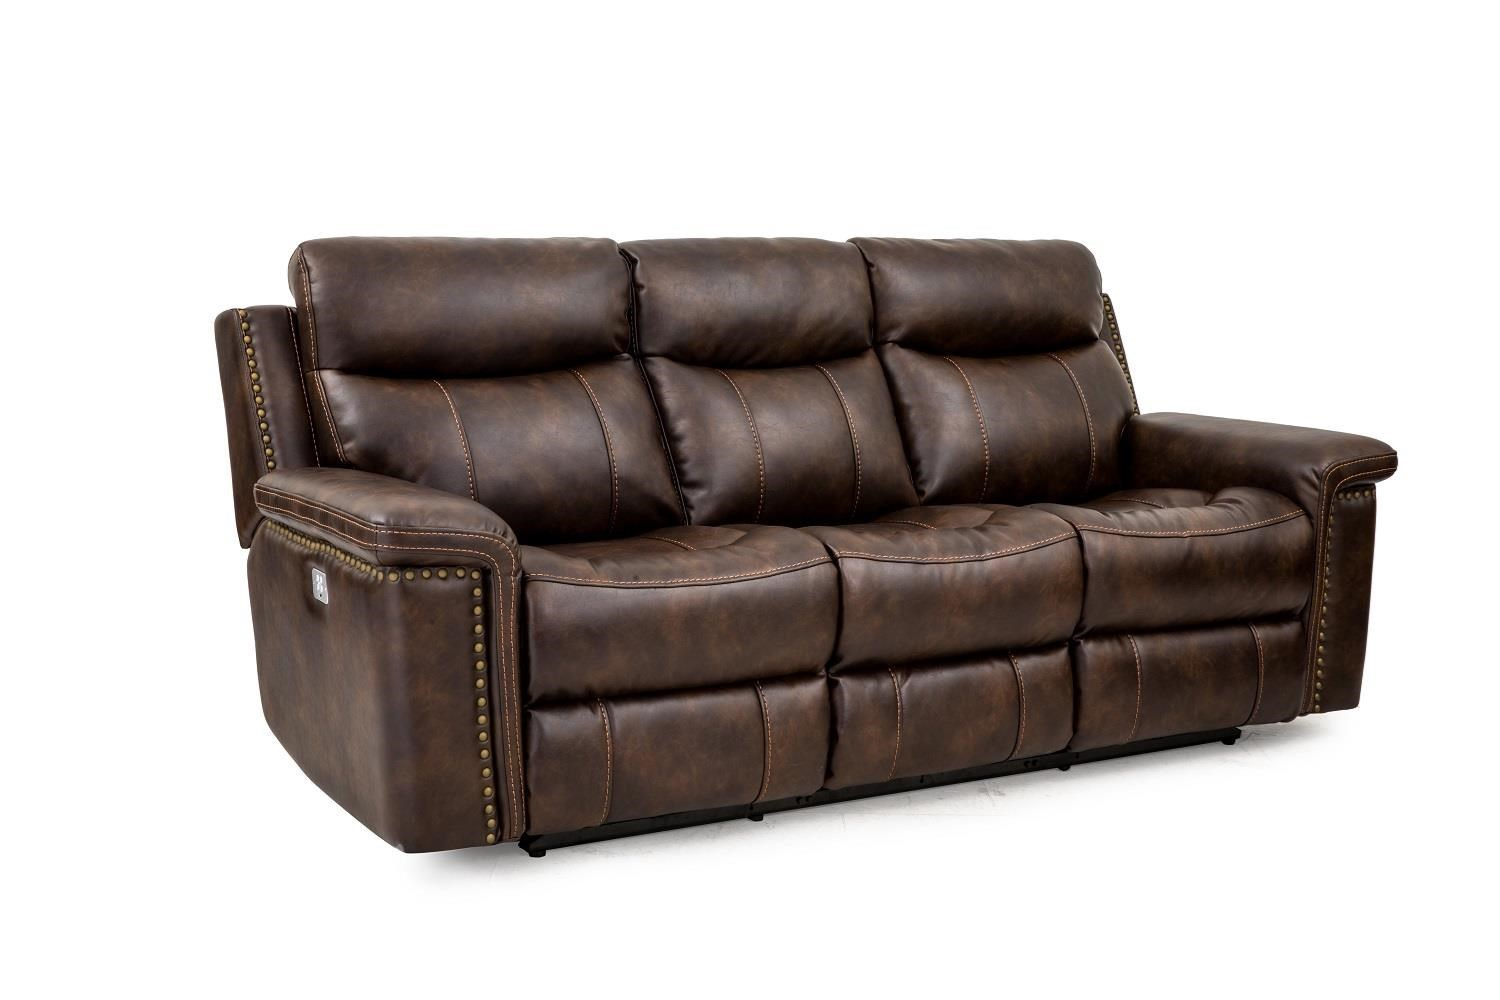 Cheers Sofa PhoenixLeather Pwr Recl Sofa W/Pwr Foot U0026 Head